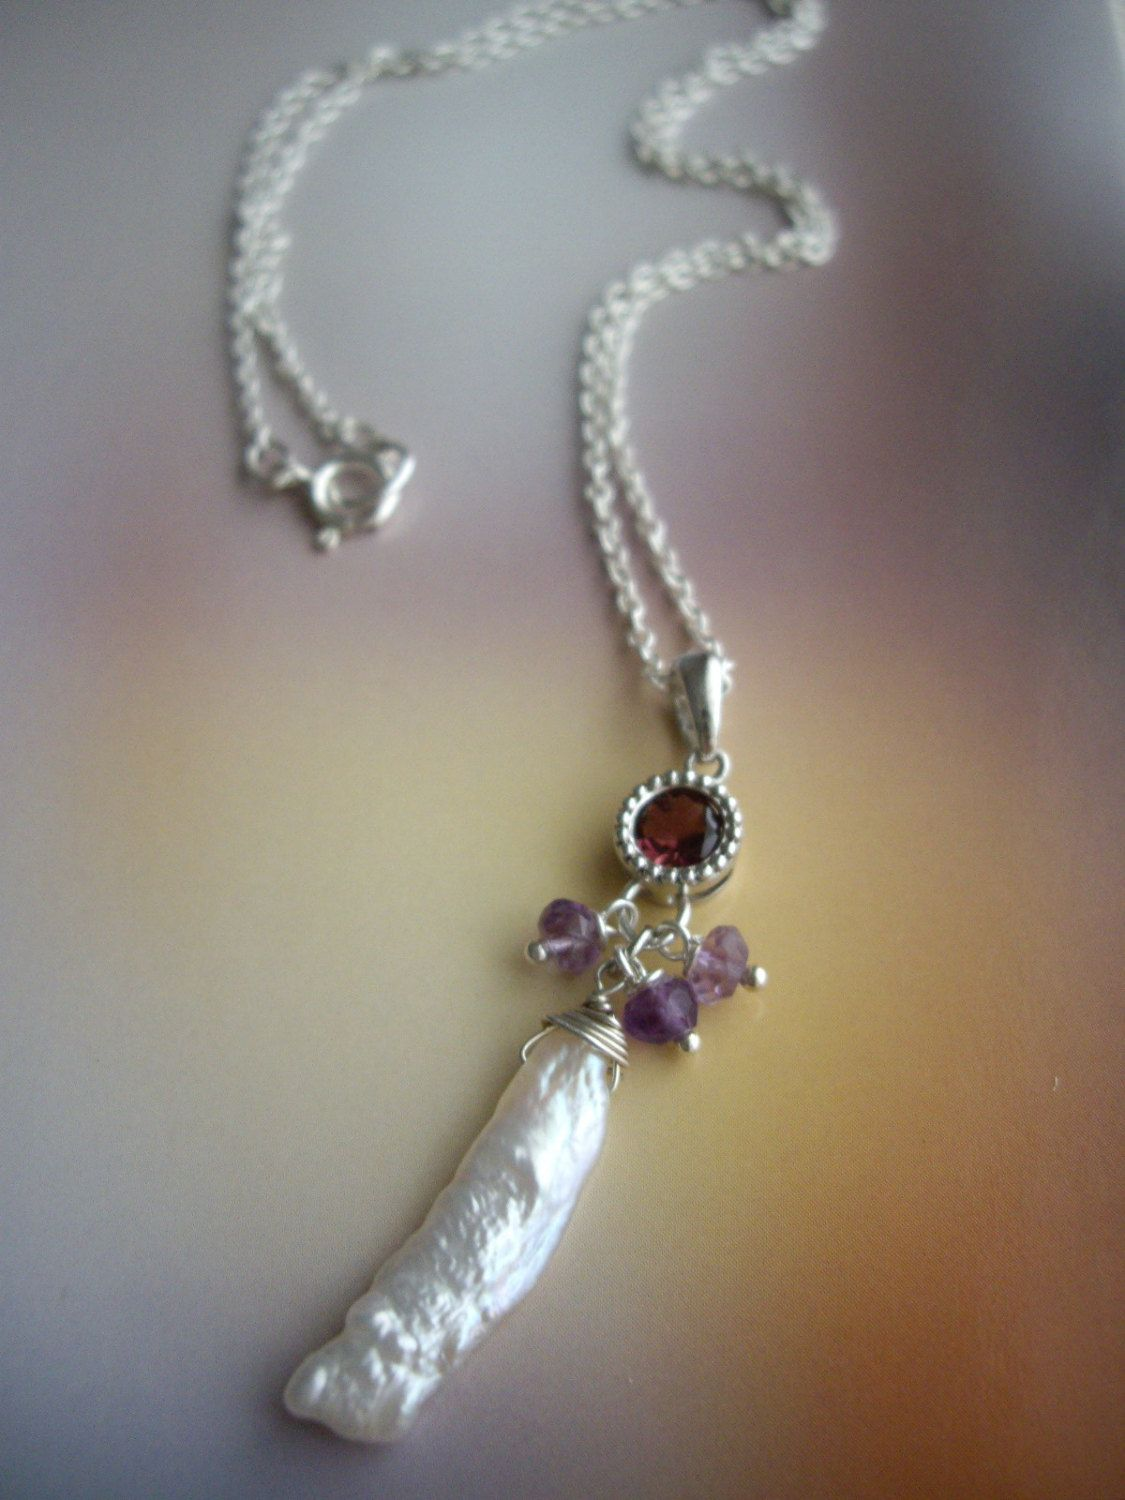 Bezel stone setting necklace,pink tourmaline necklace,stick pearl necklace,amethyst,dangle,sterling silver chain necklace - pinned by pin4etsy.com